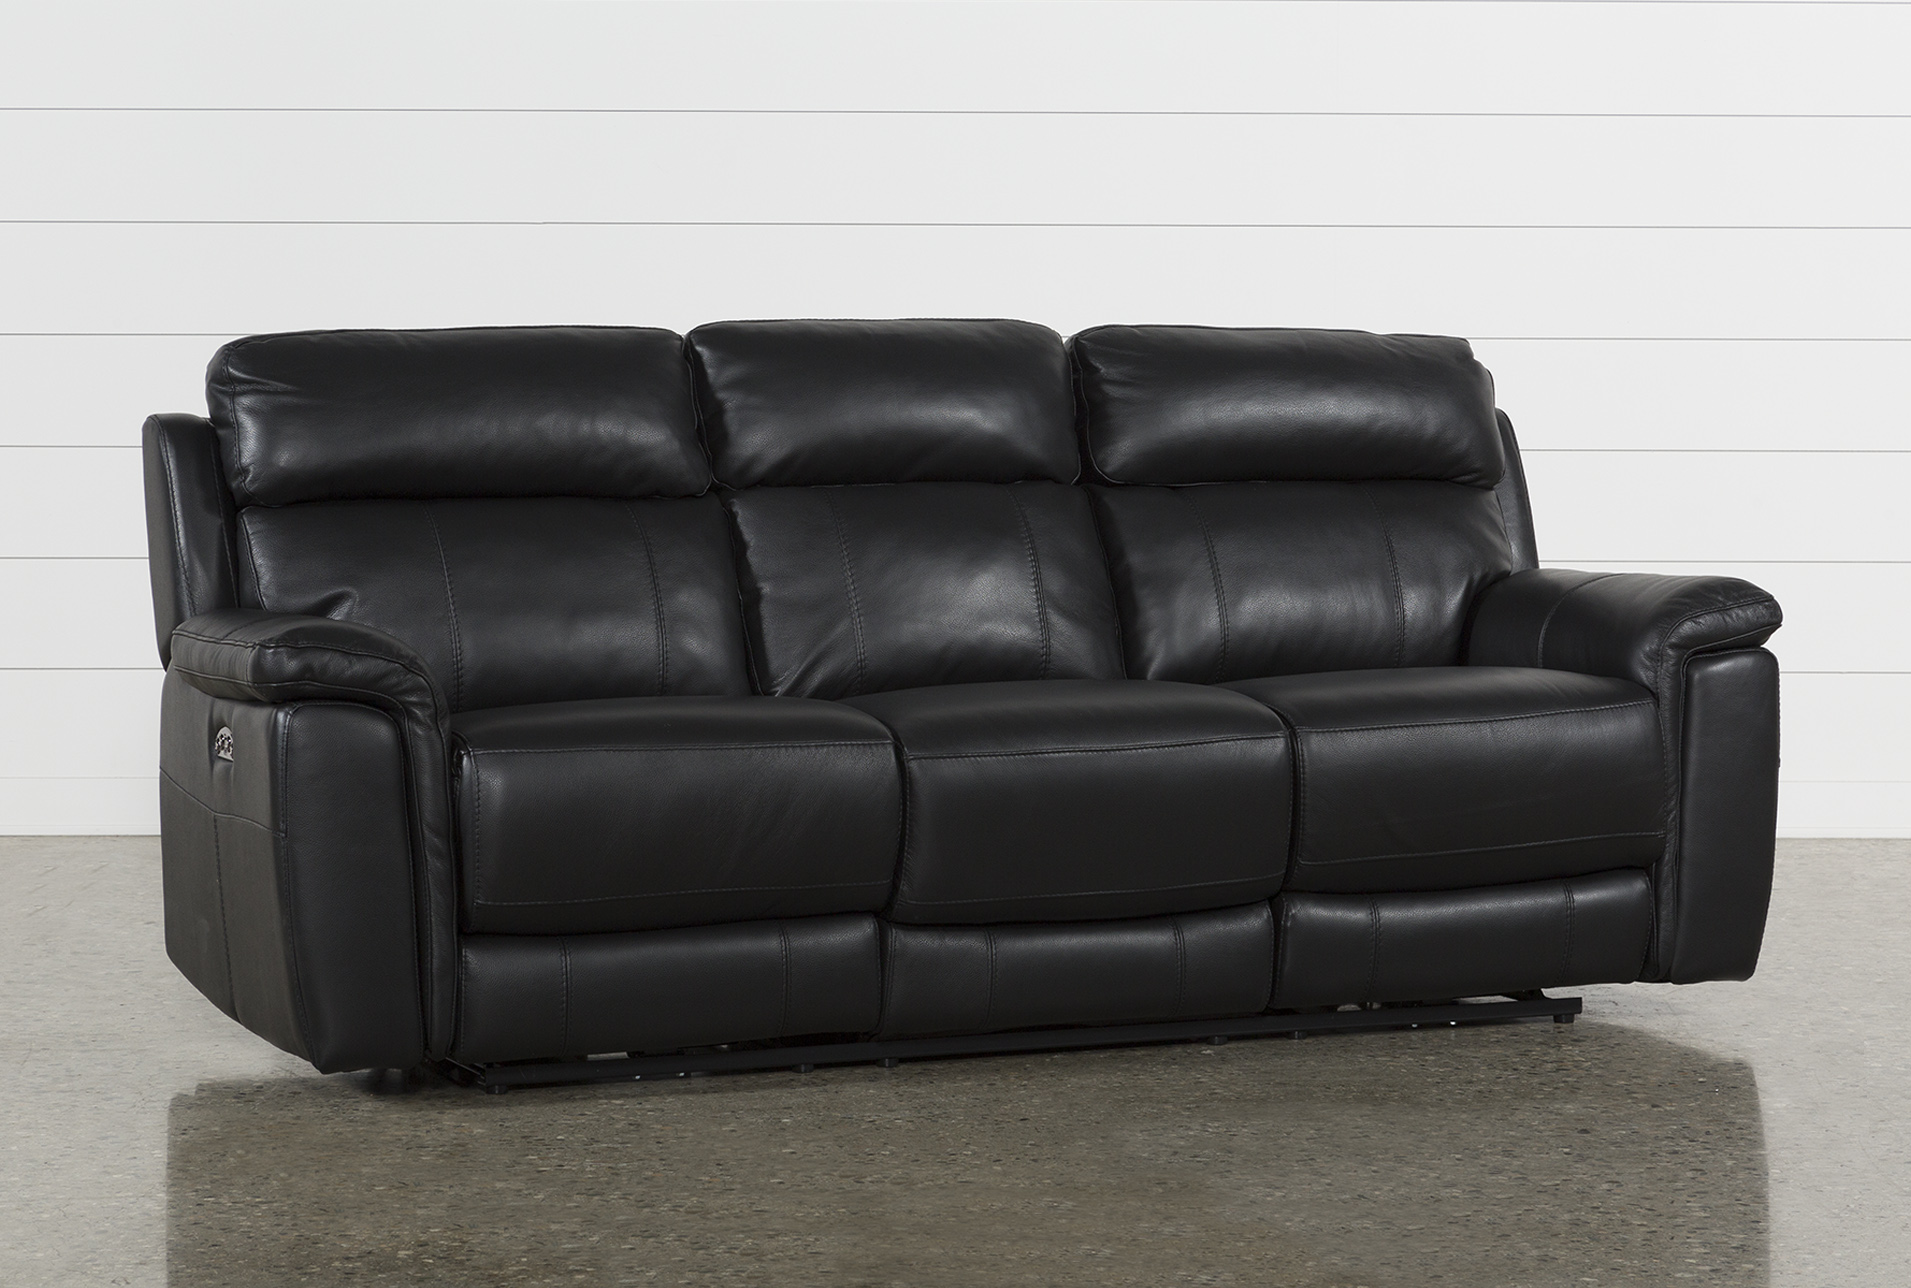 Sofa With Recliner Dino Black Leather Power Reclining Sofa W Power Headrest Usb